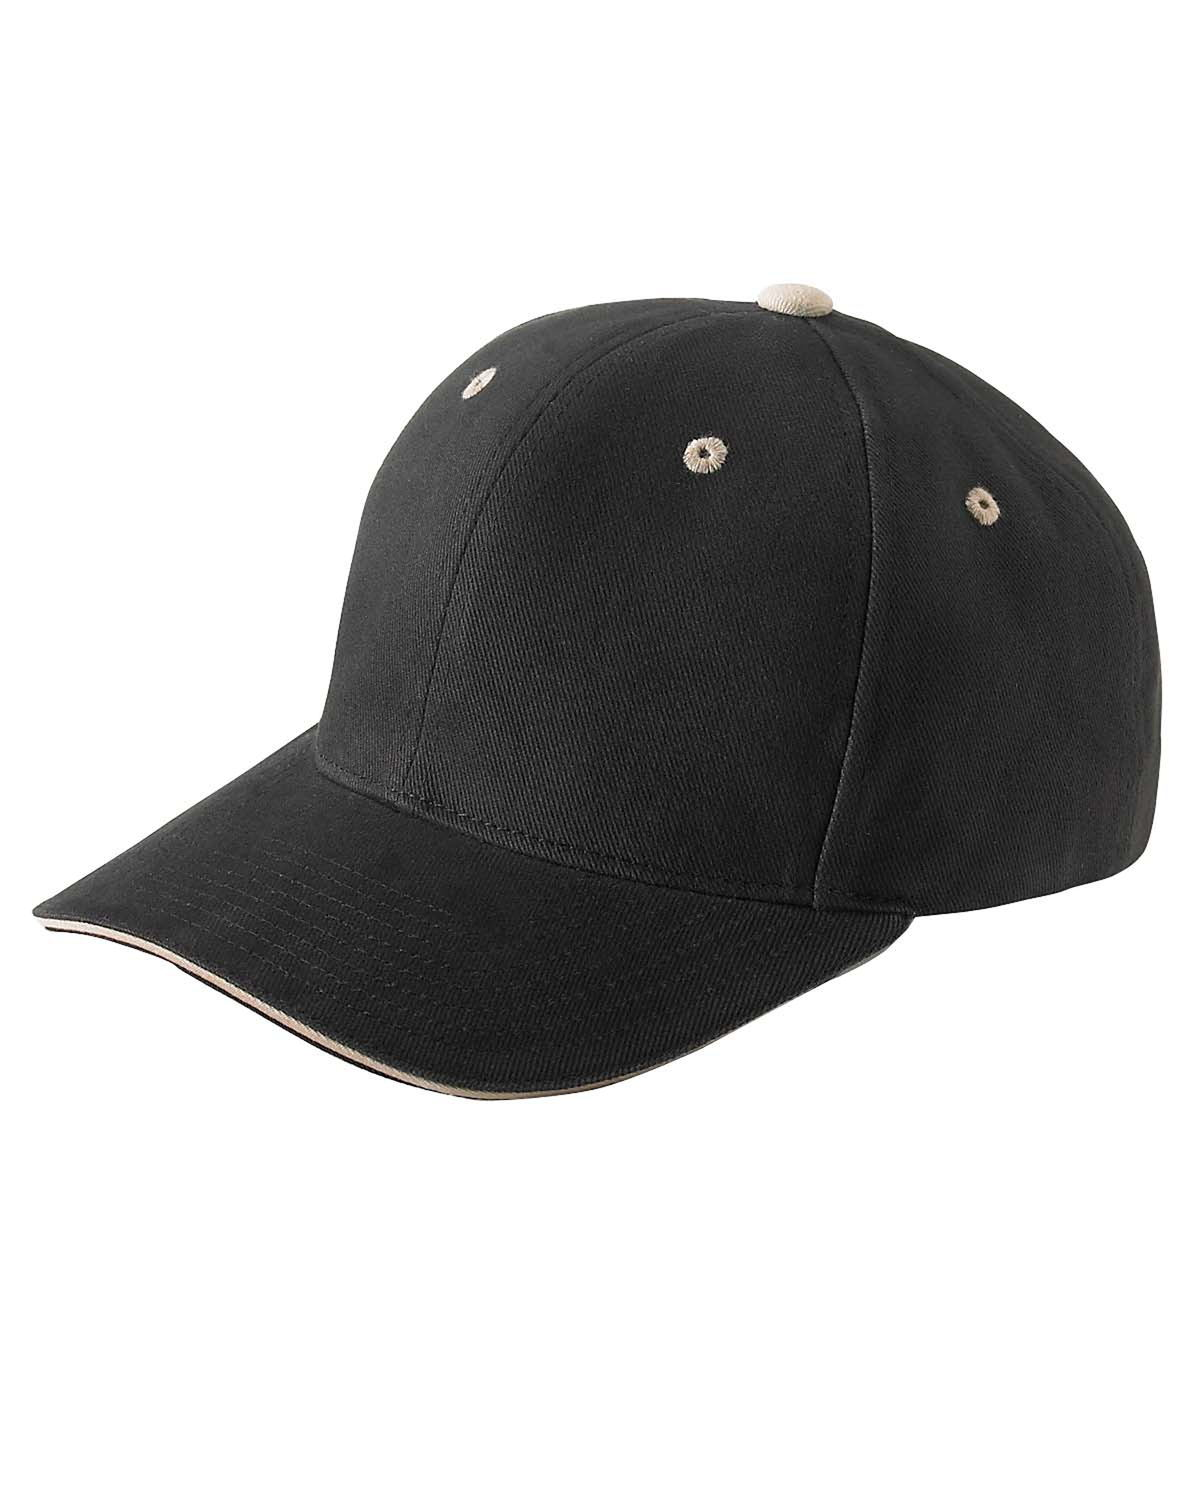 Yupoong 6262S Brushed Cotton Twill 6-Panel Mid-Profile . 27d2e3ee3cea